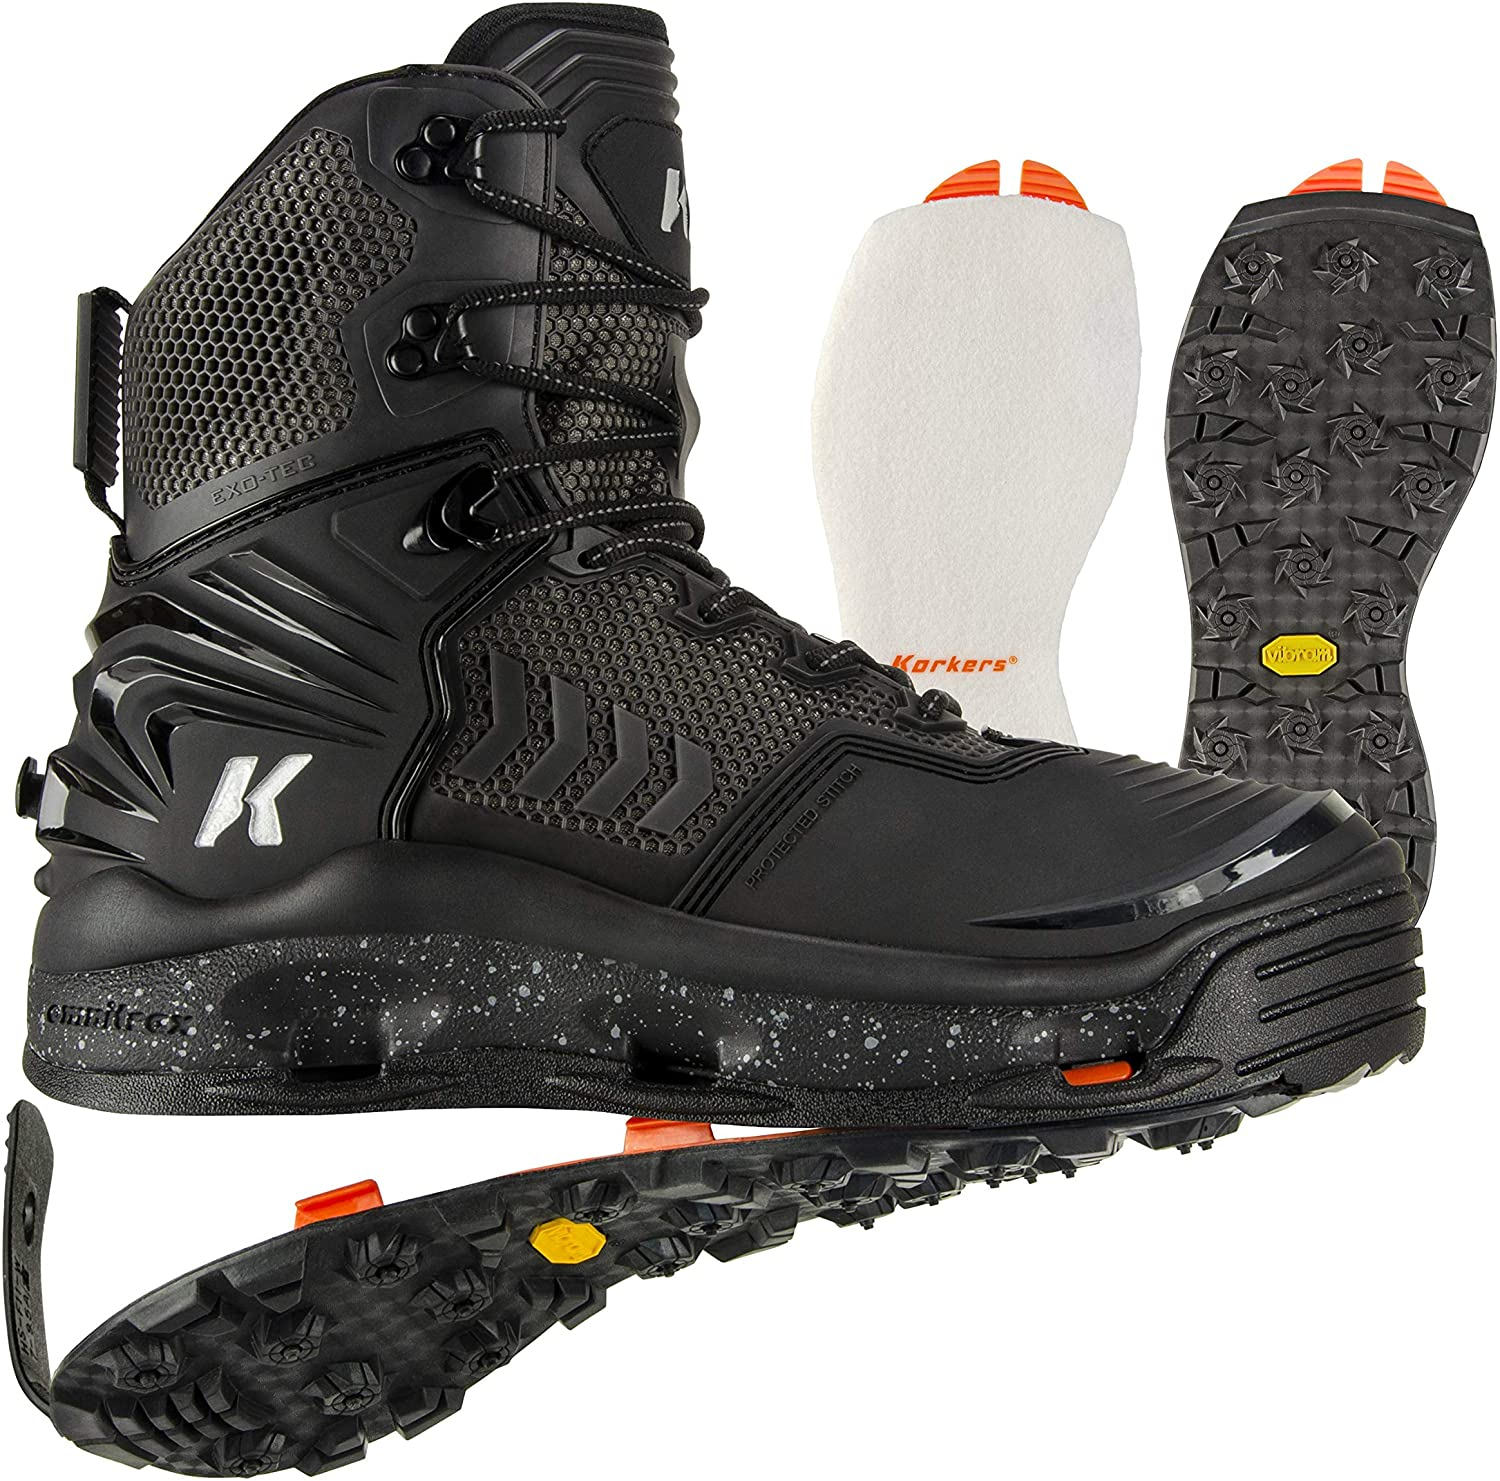 Korkers River Ops Wading Boots for fly fishing review